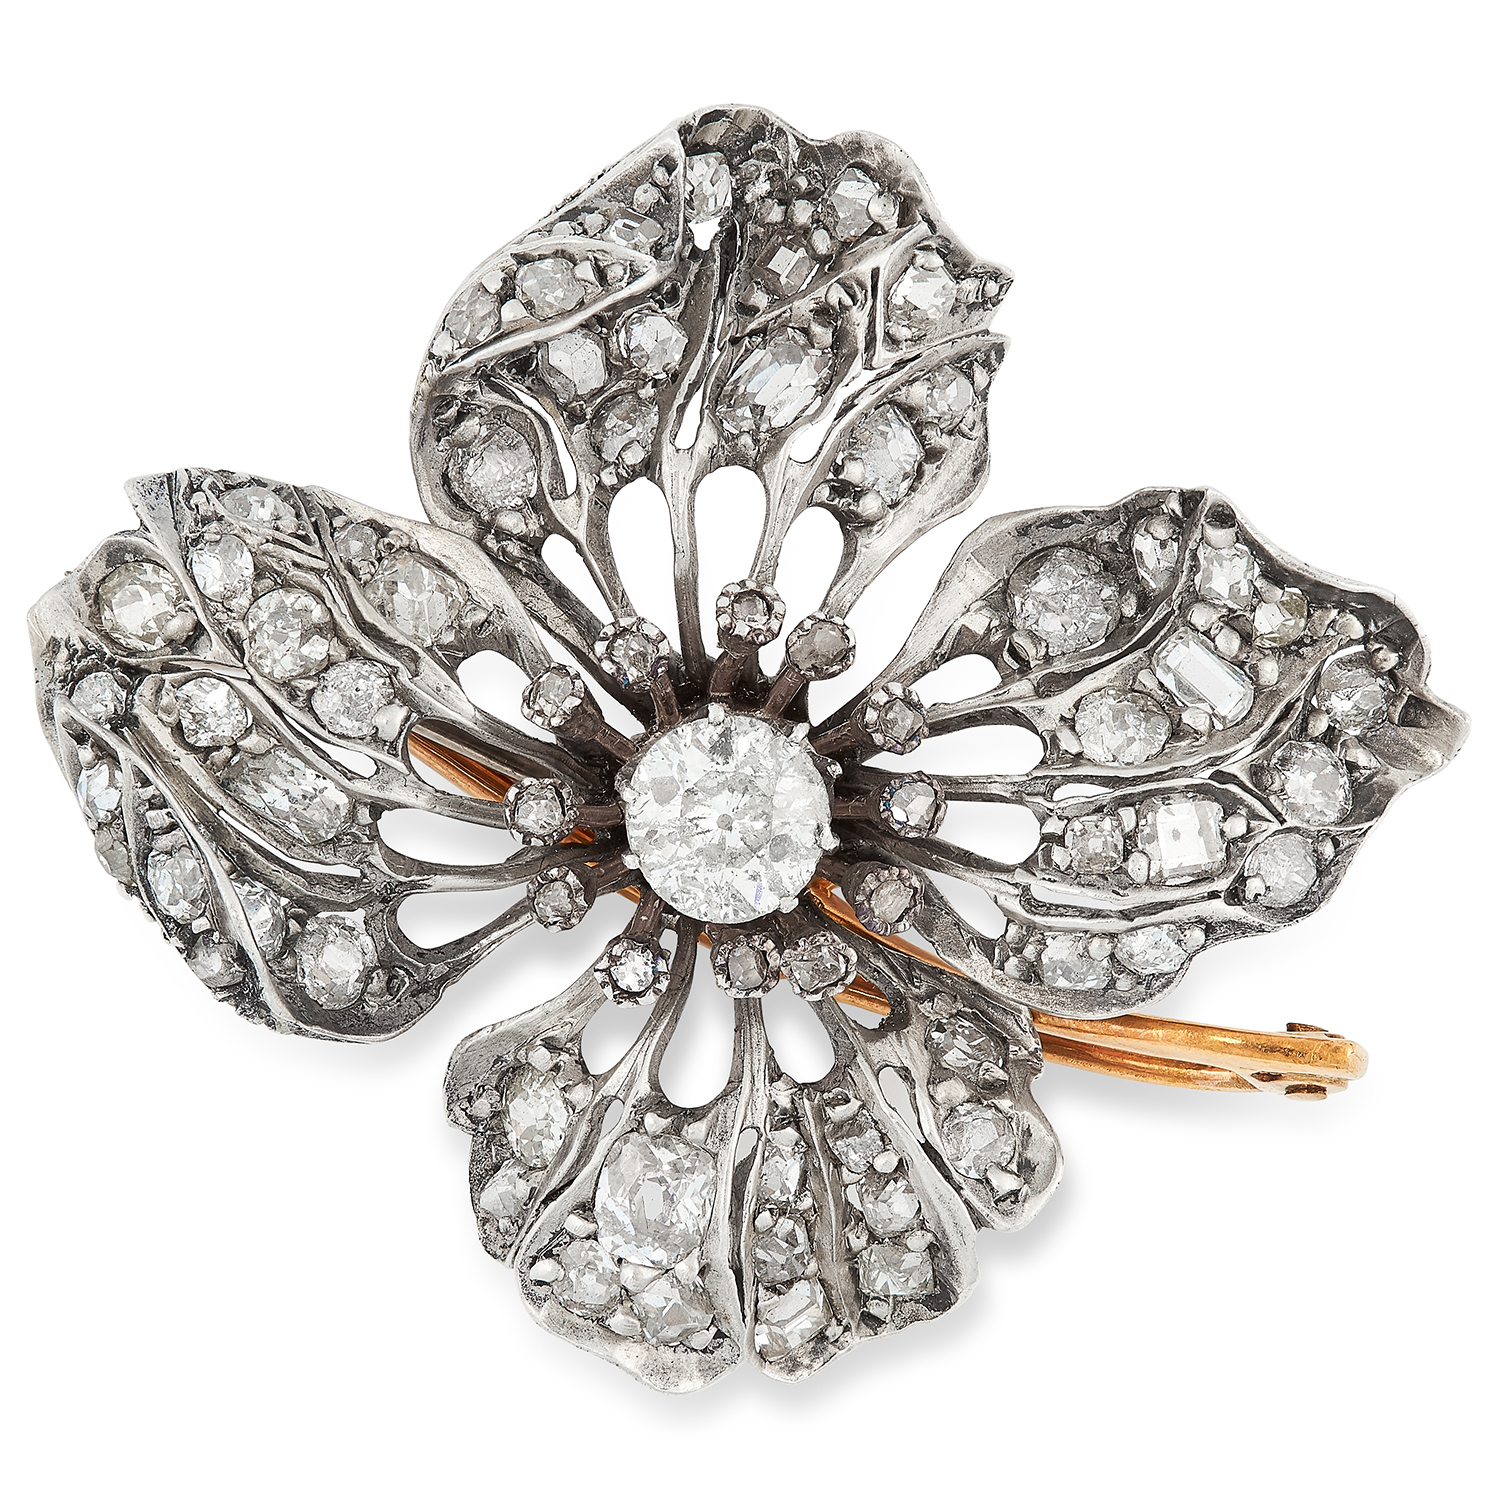 Los 20 - AN ANTIQUE DIAMOND FLOWER RING / BROOCH / PENDANT the flower head design set with a principal old